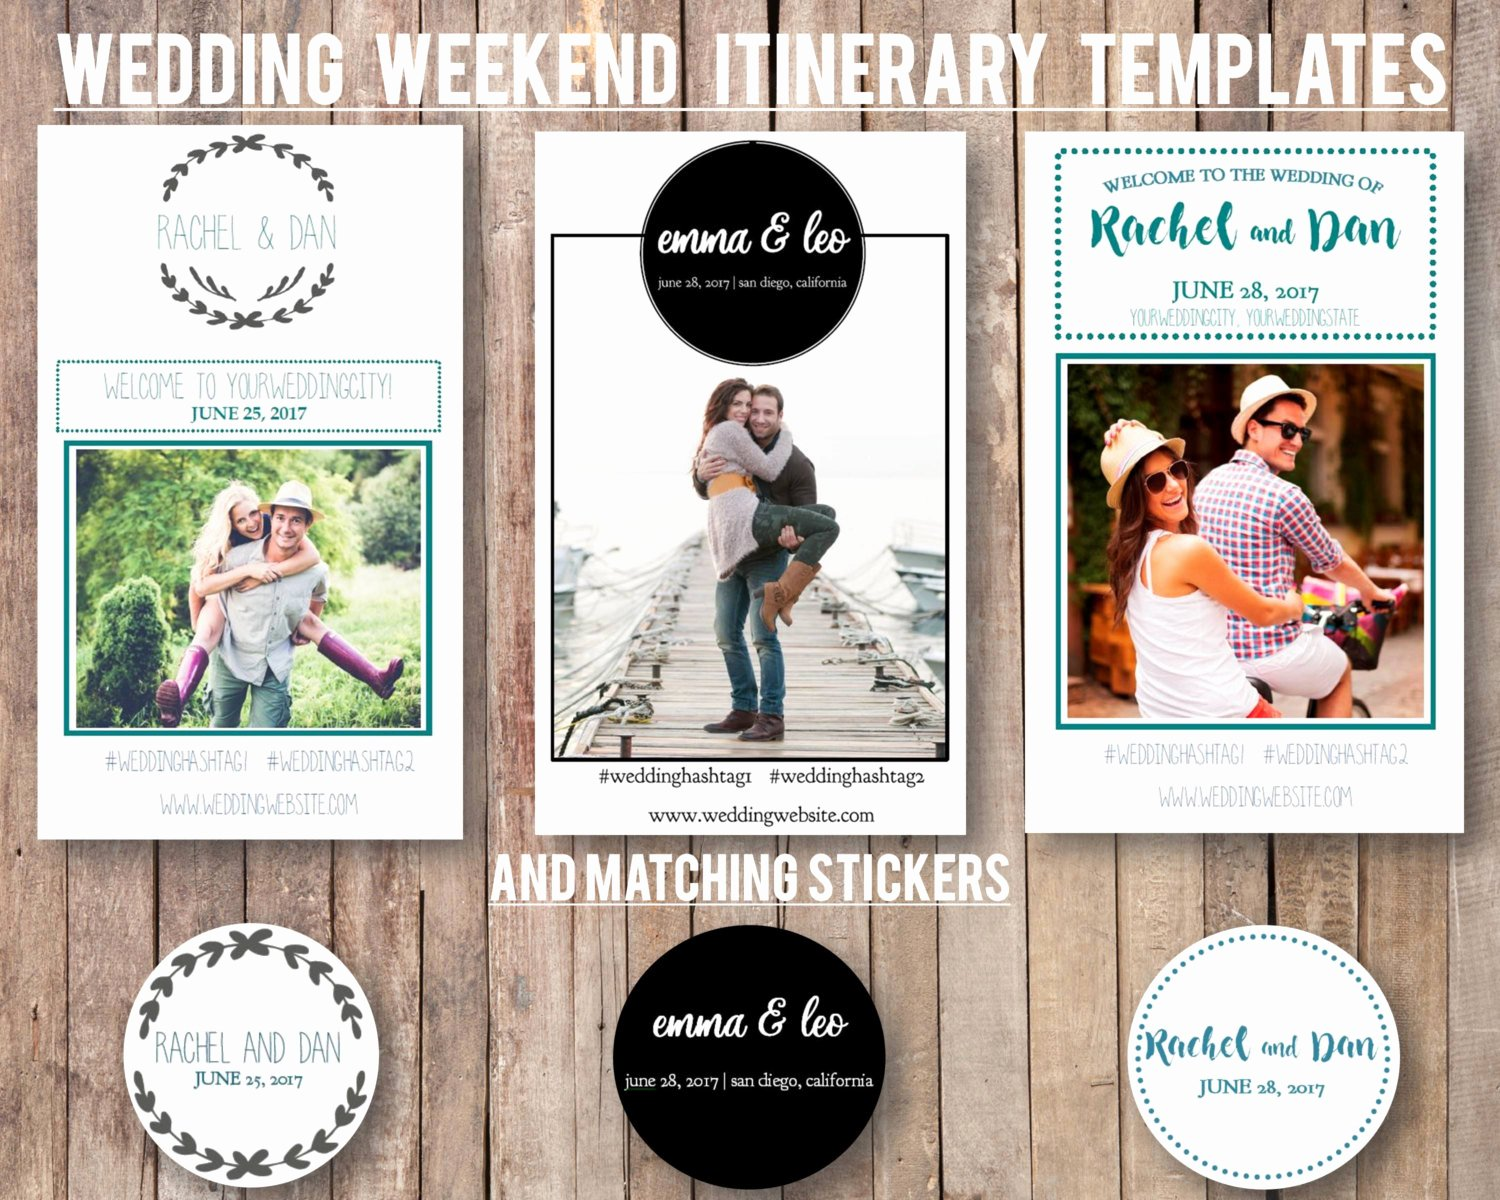 Wedding Weekend Itinerary Template Inspirational Wedding Weekend Diy Itinerary Schedule Template by